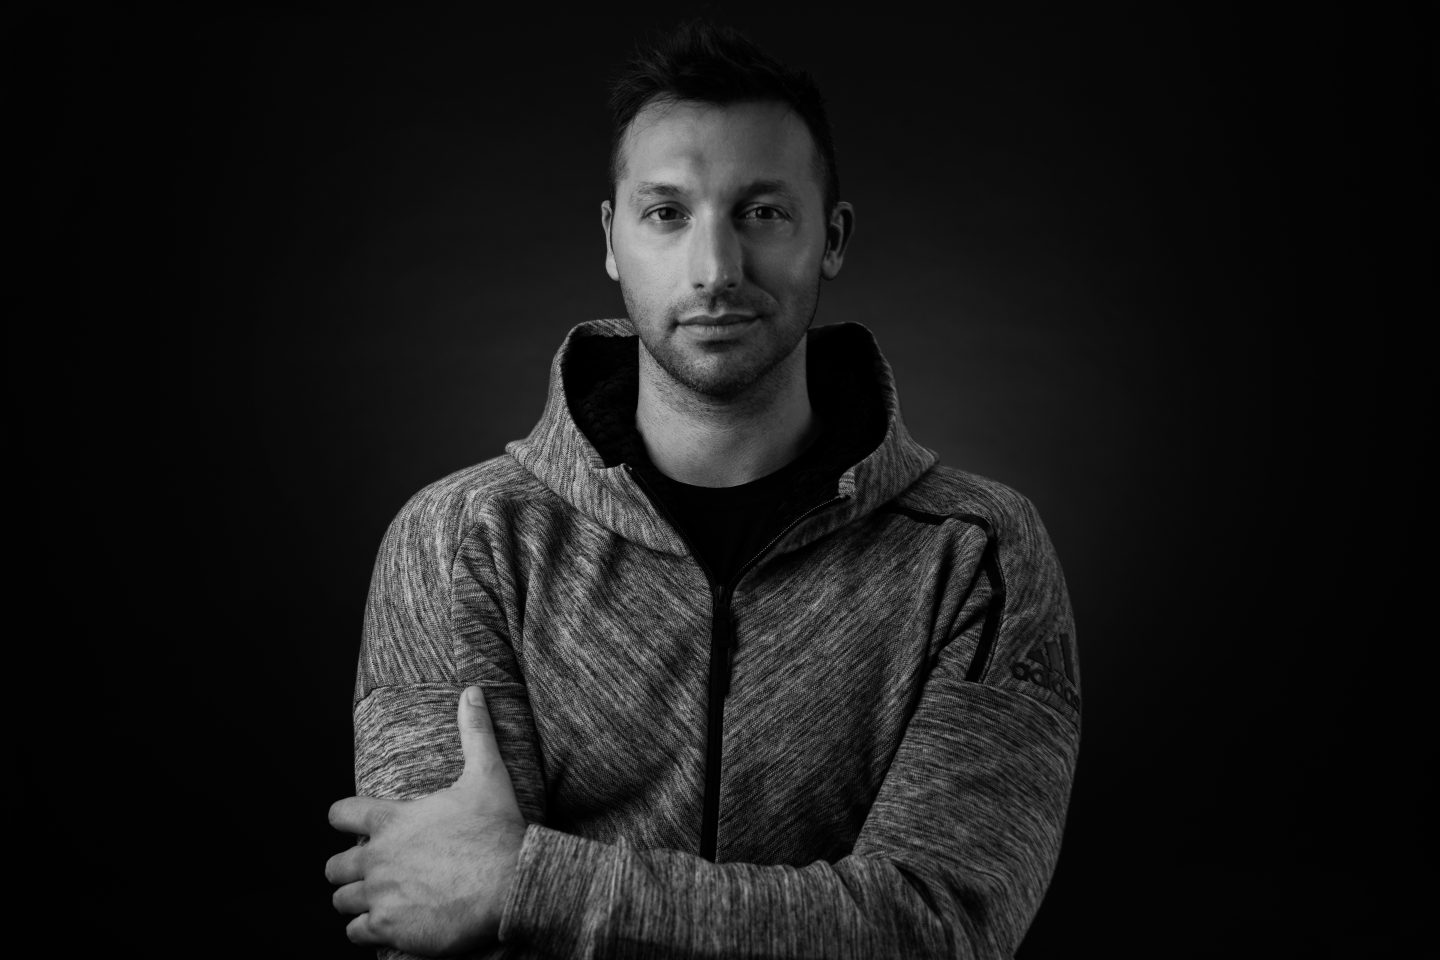 Black and white portrait of Ian Thorpe. Coming out, confidence, mental health, interview, bullies, GamePlan A, youth, support, gay athletes, swimmer, Olympic champion, adidas, GamePlan A